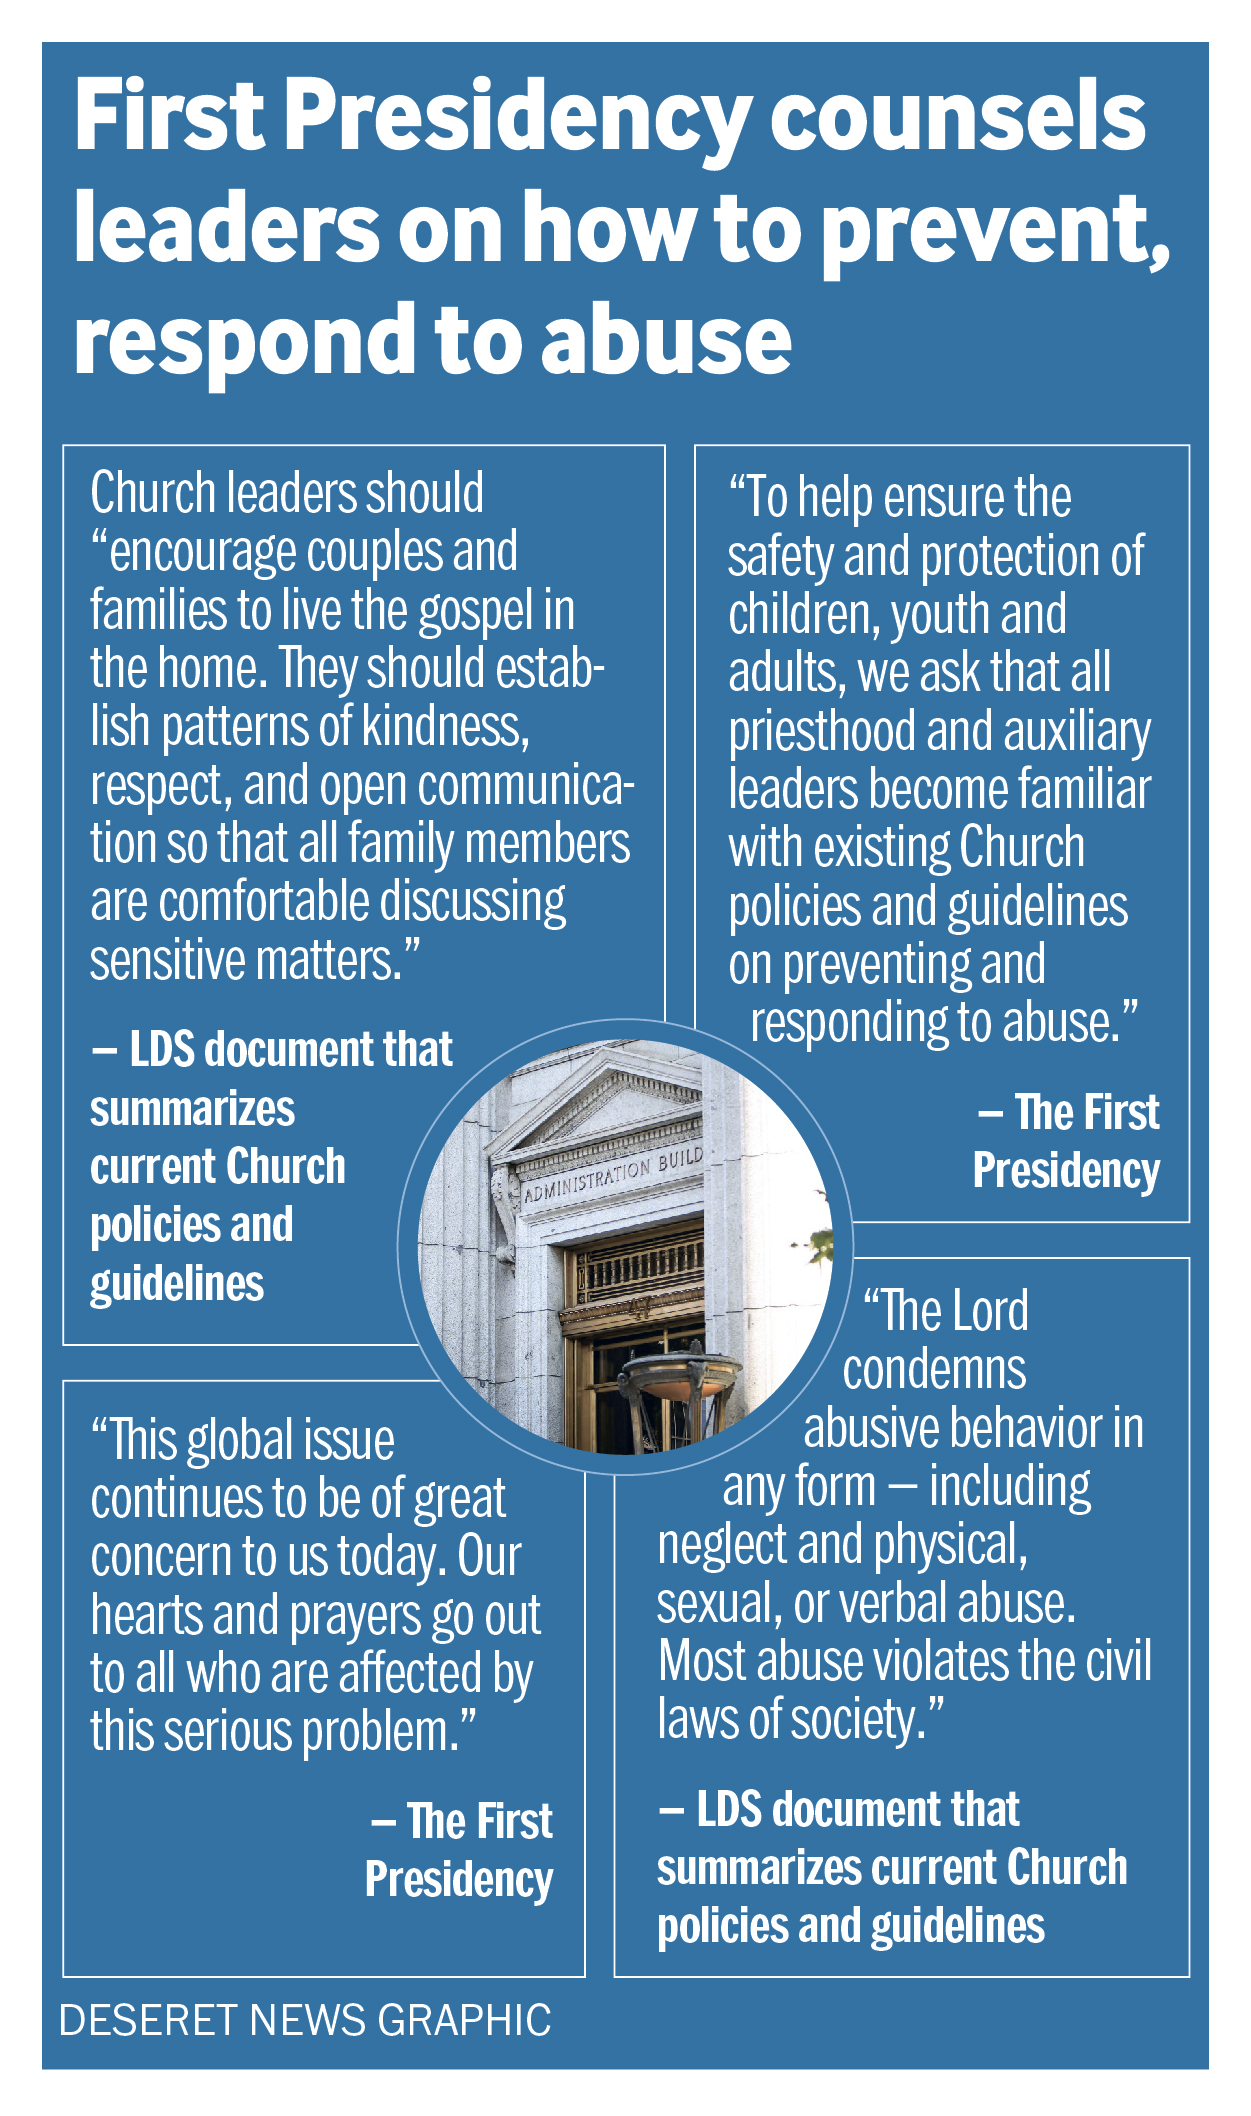 First Presidency counsels leaders how to prevent, respond to abuse